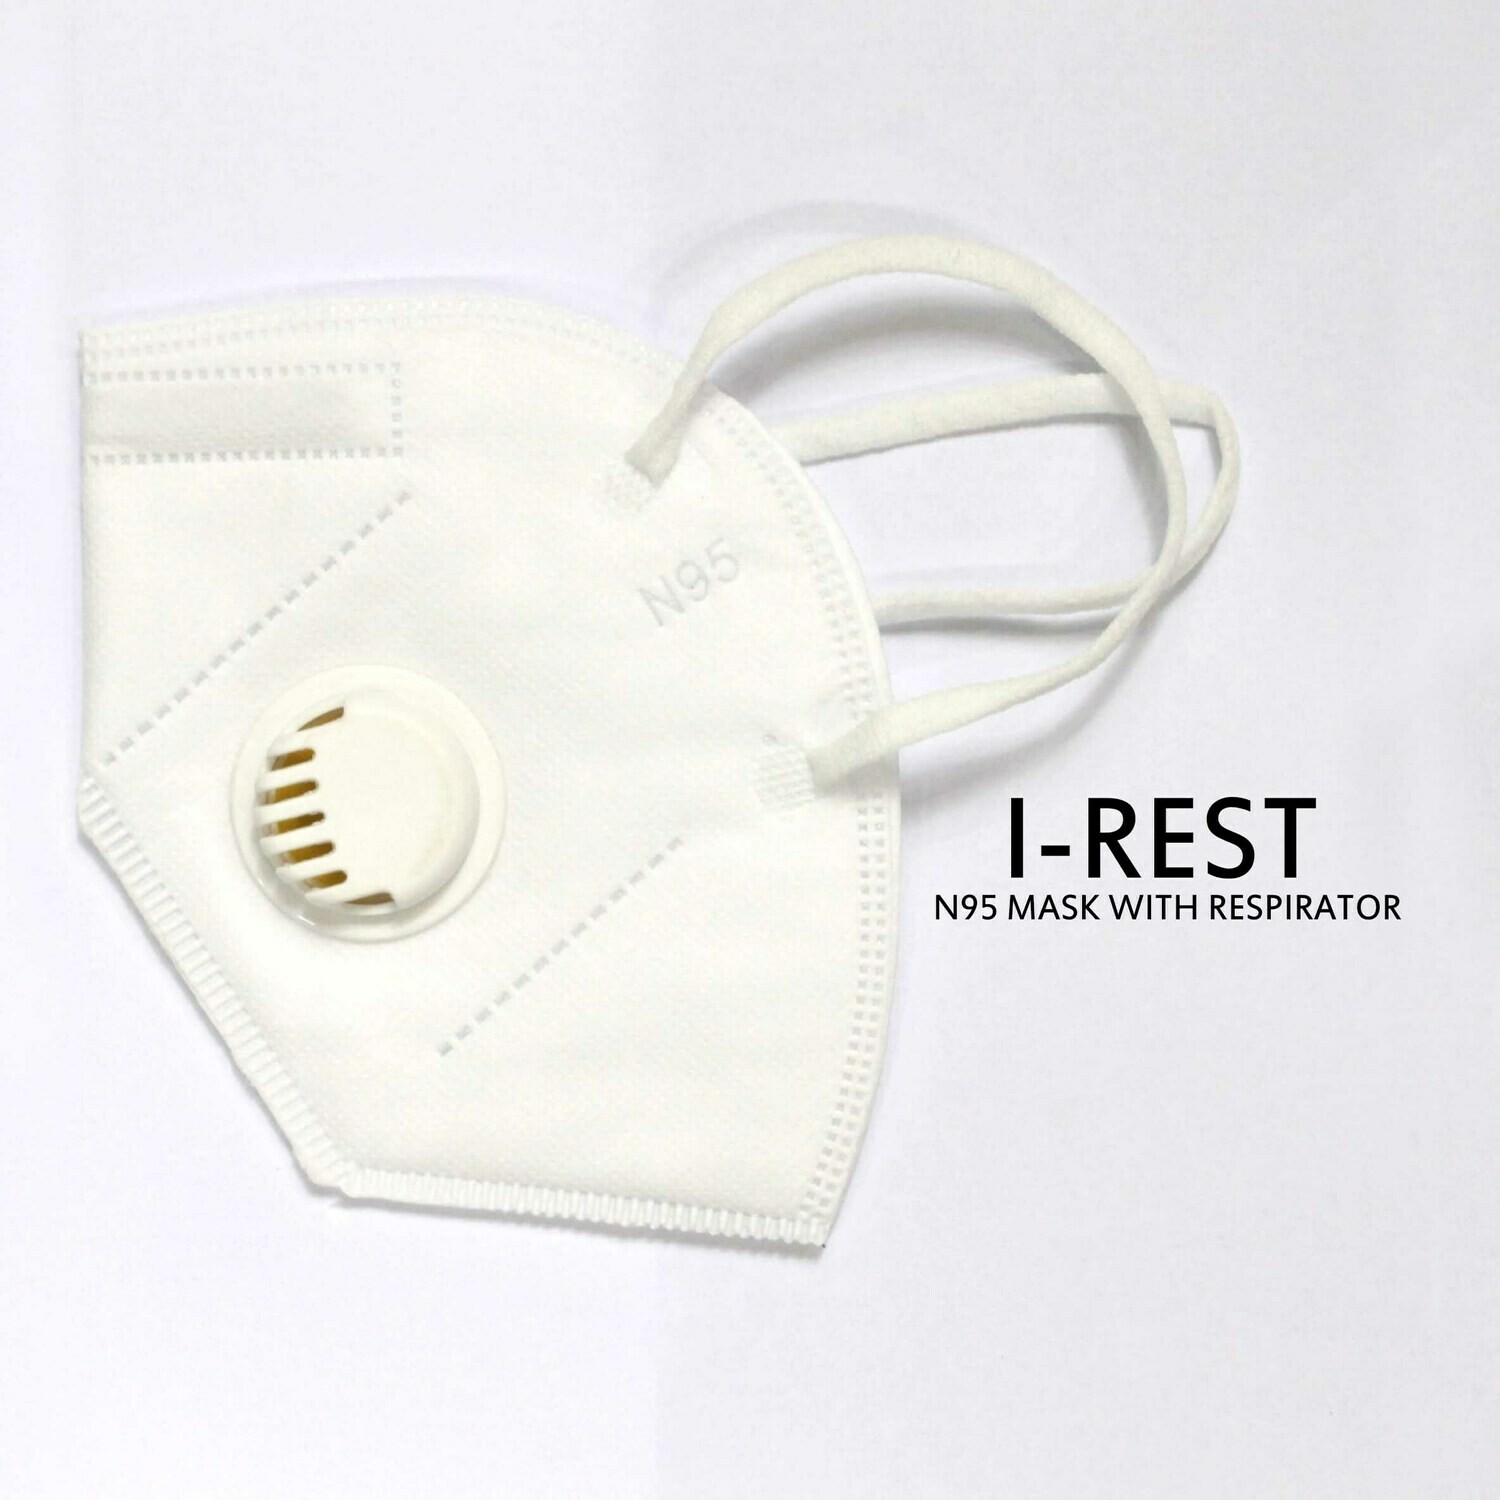 IREST. N95 MASK WITH RESPIRATOR